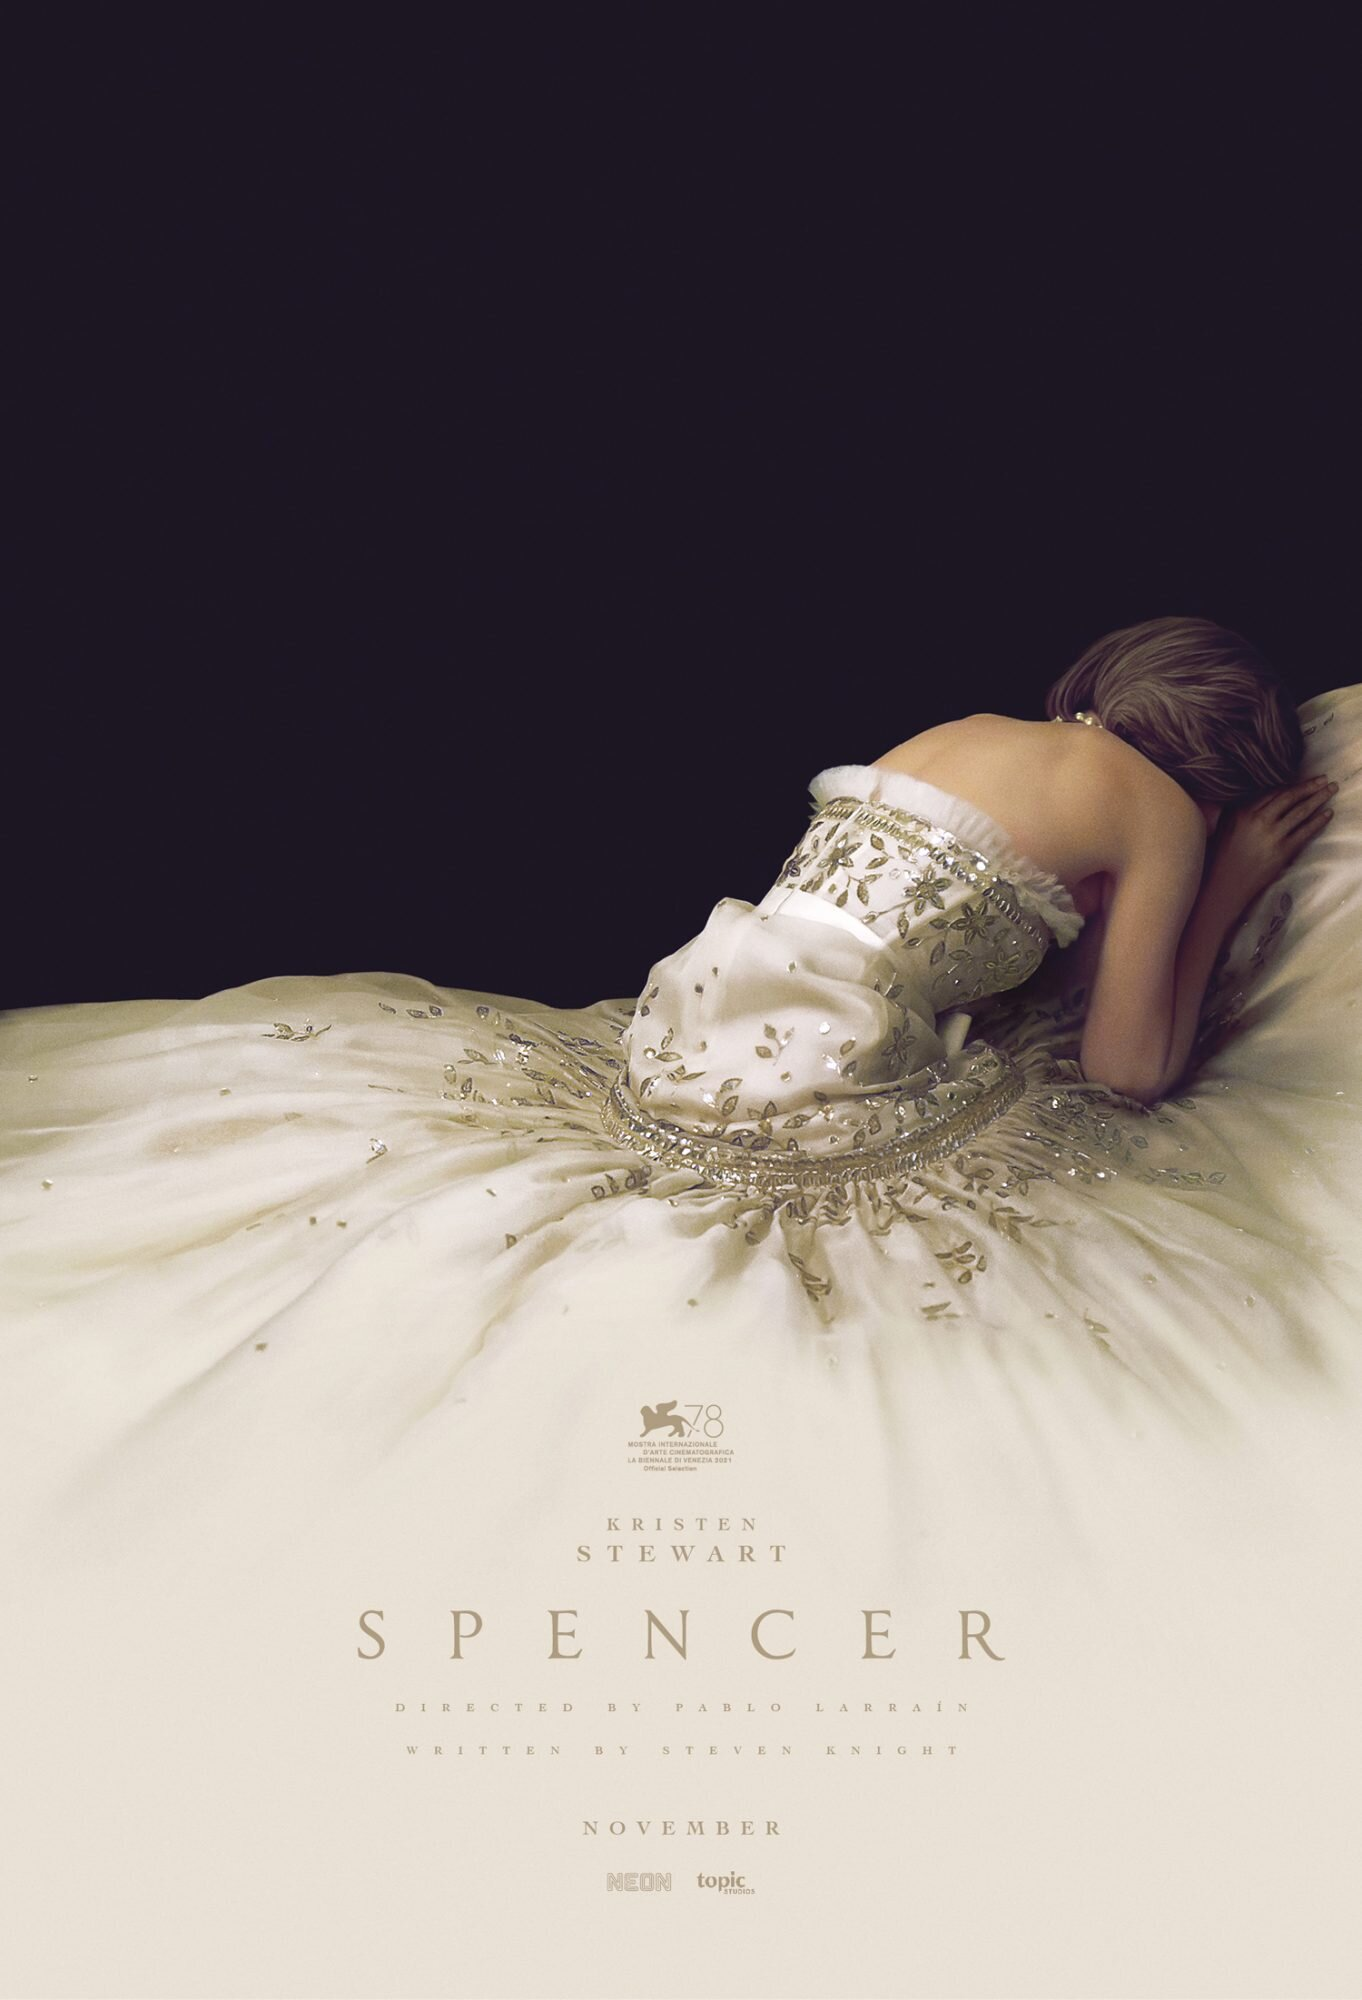 See Kristen Stewart as Princess Diana in First Poster for Spencer Movie |  PEOPLE.com